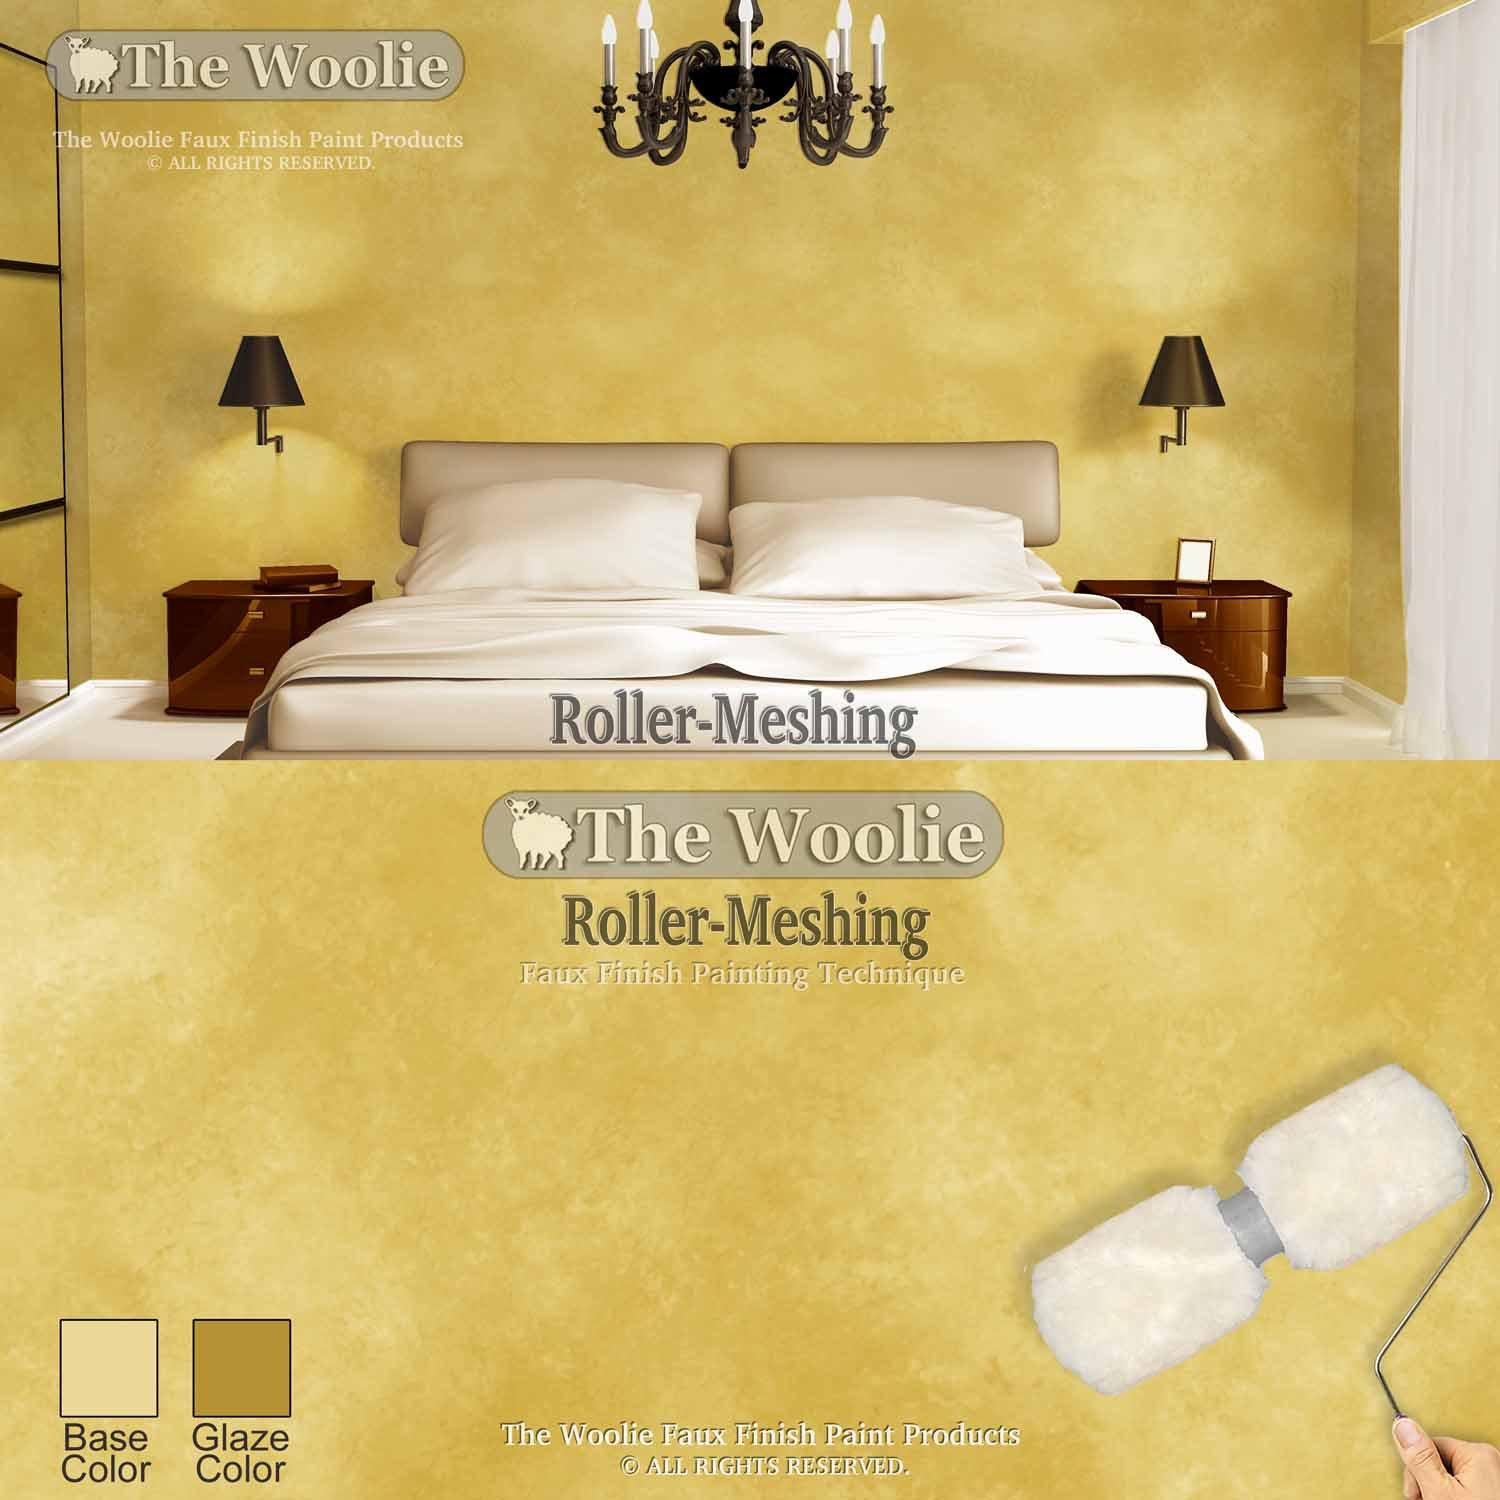 faux painting. Amazon.com: The Woolie Dual 2-Color Split Roller TRAY - Faux Finish Paint TRAY: Home Improvement Painting